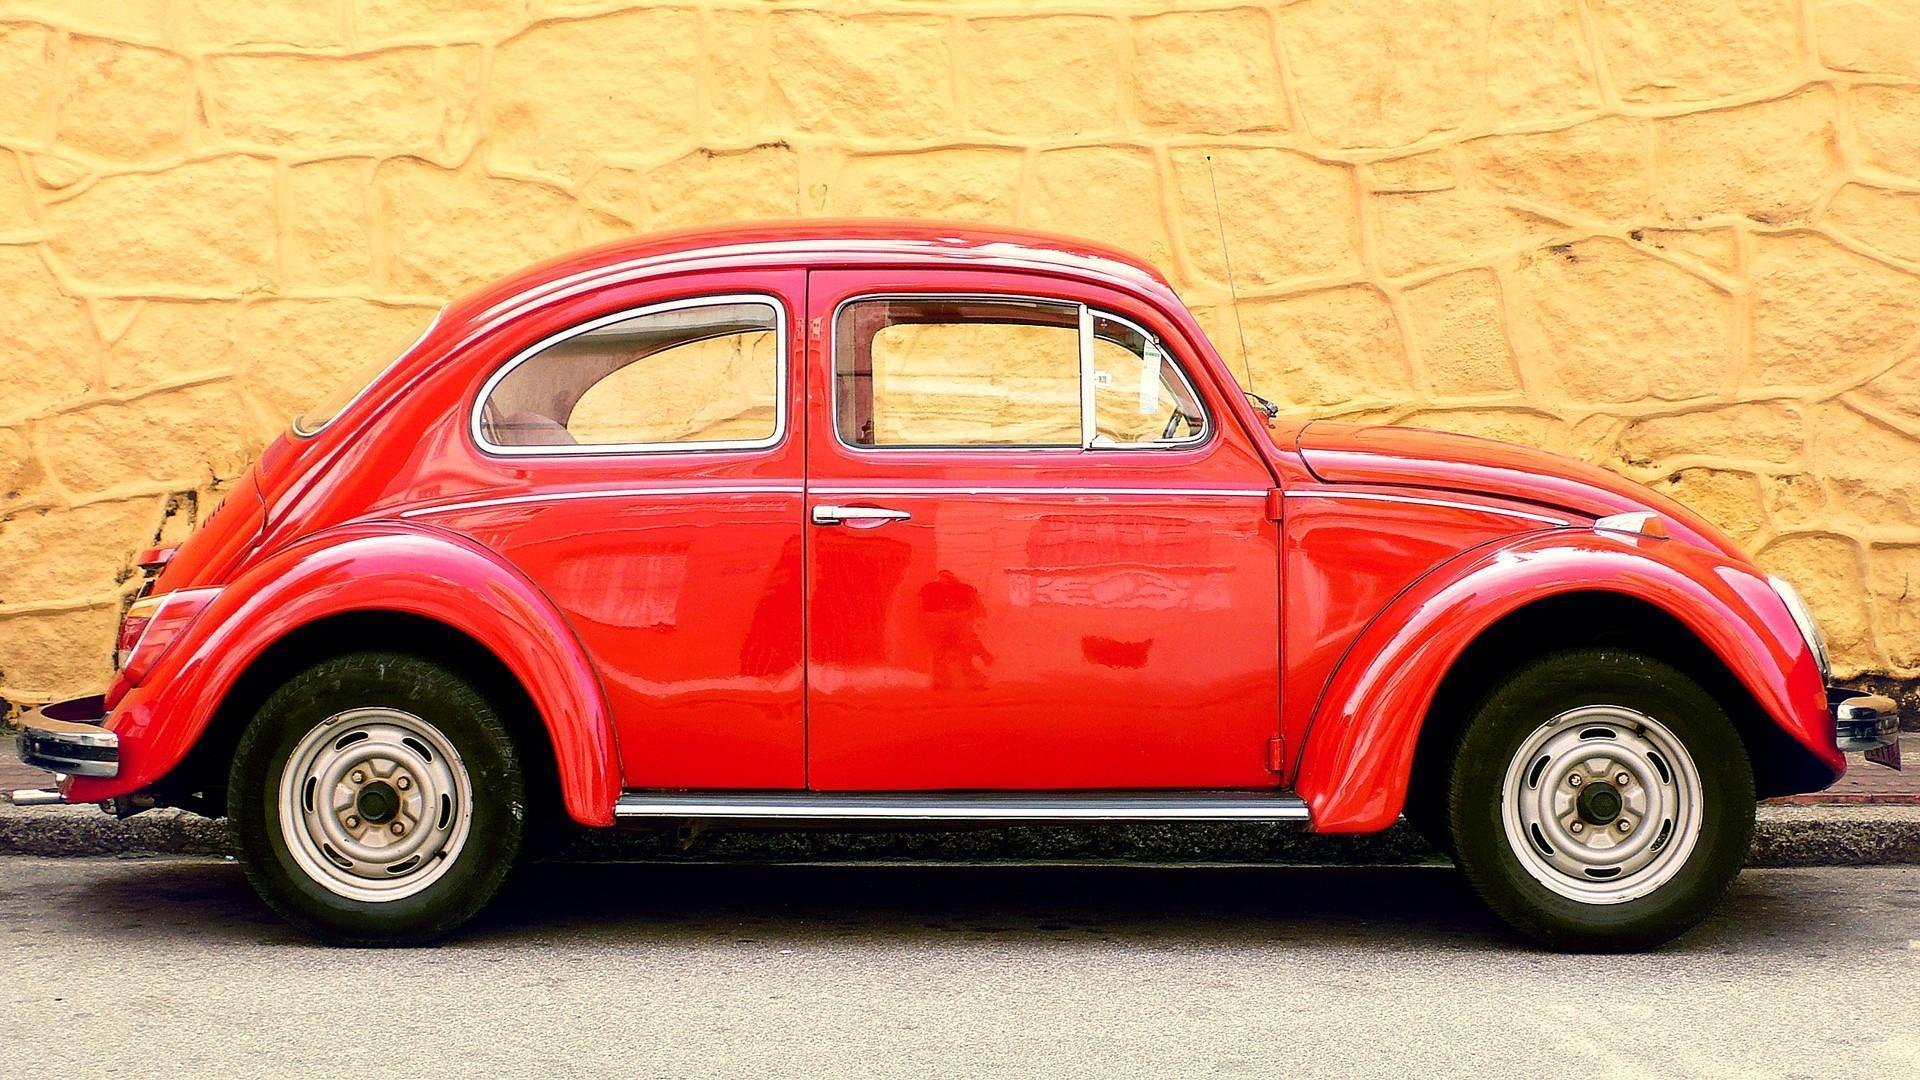 Volkswagen Beetle Wallpapers HD Download